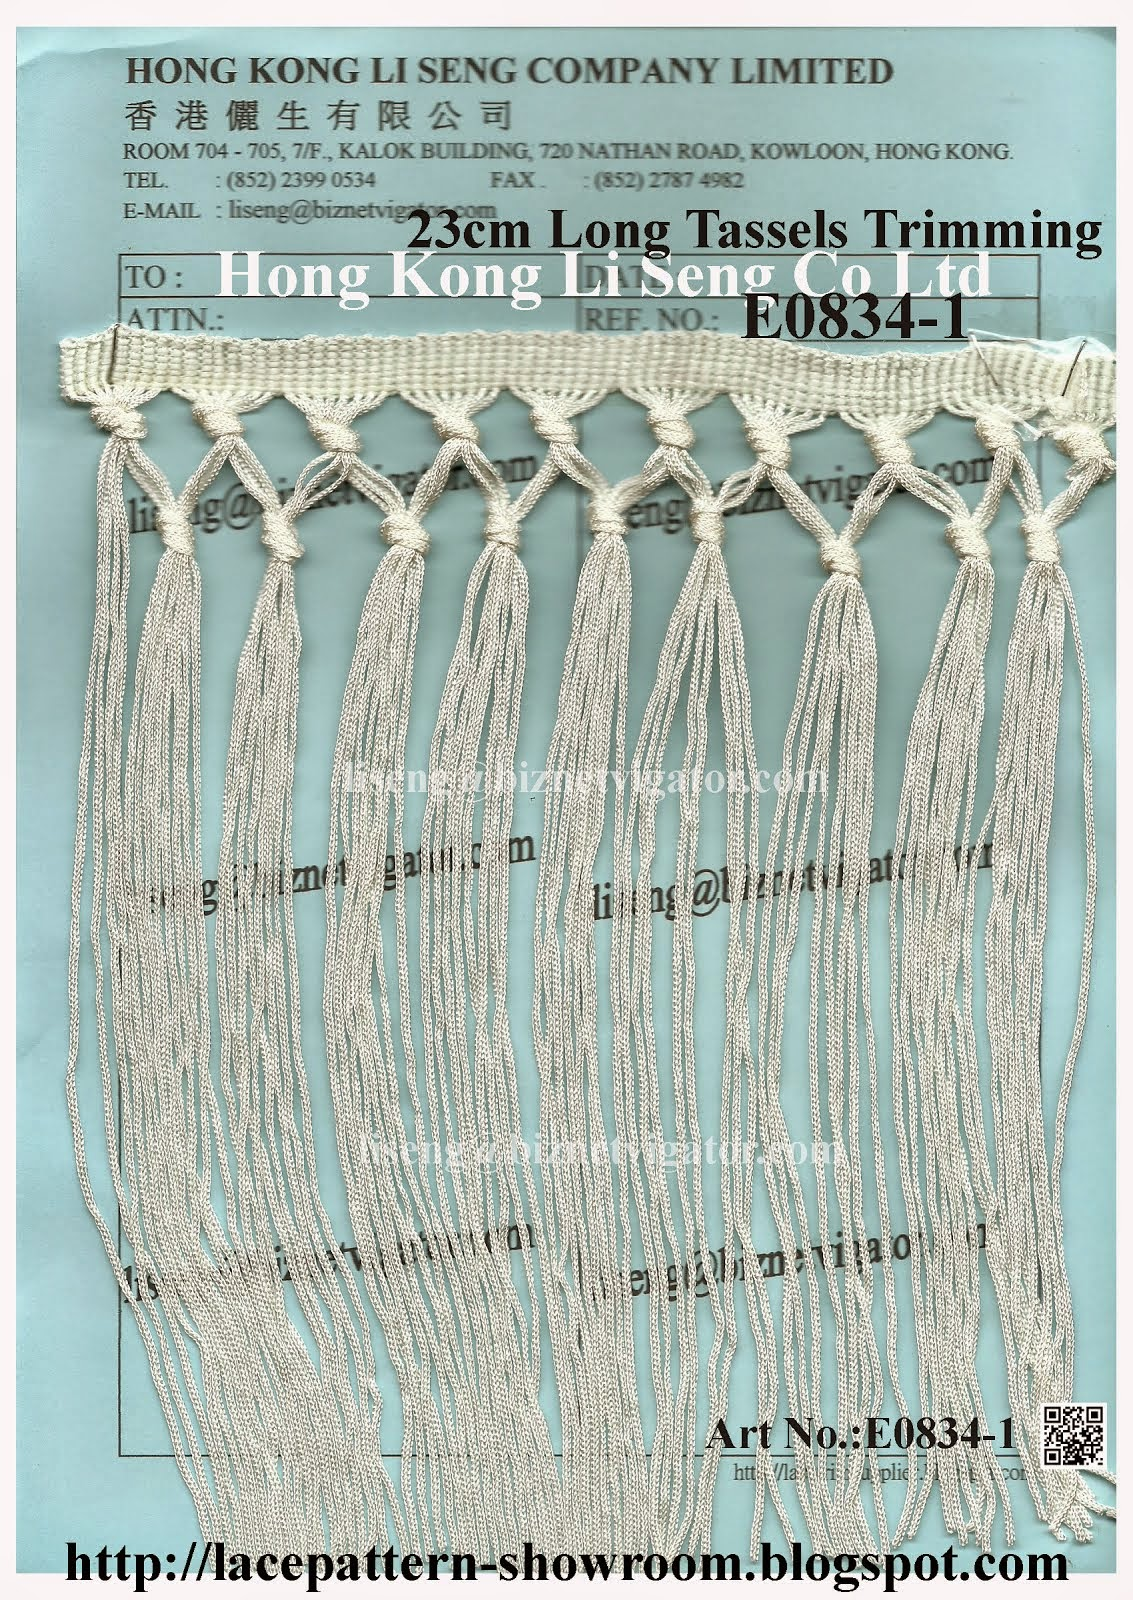 23cm Long Tassels Trimming Wholesale Manufacturer and Supplier - Hong Kong Li Seng Co Ltd